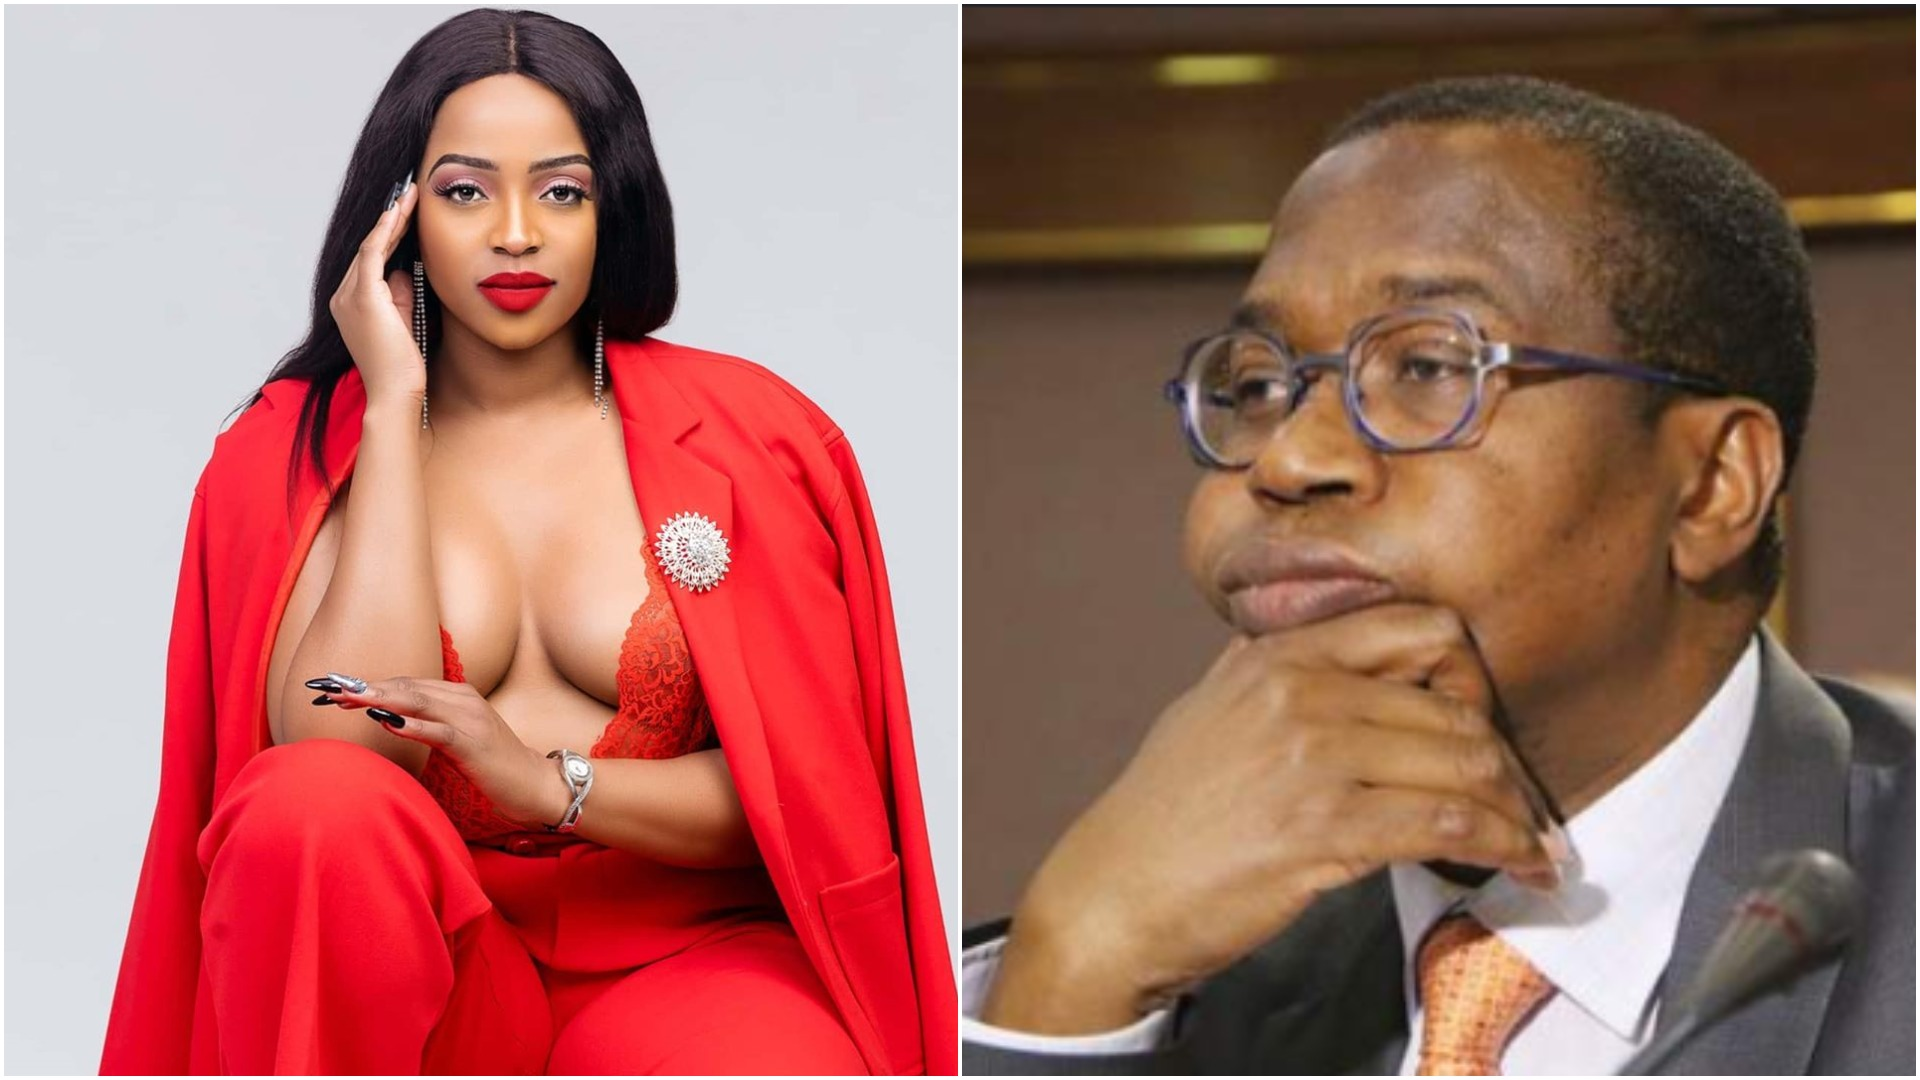 Mthuli Ncube Fumes After Jackie Ngarande Exposes Affair